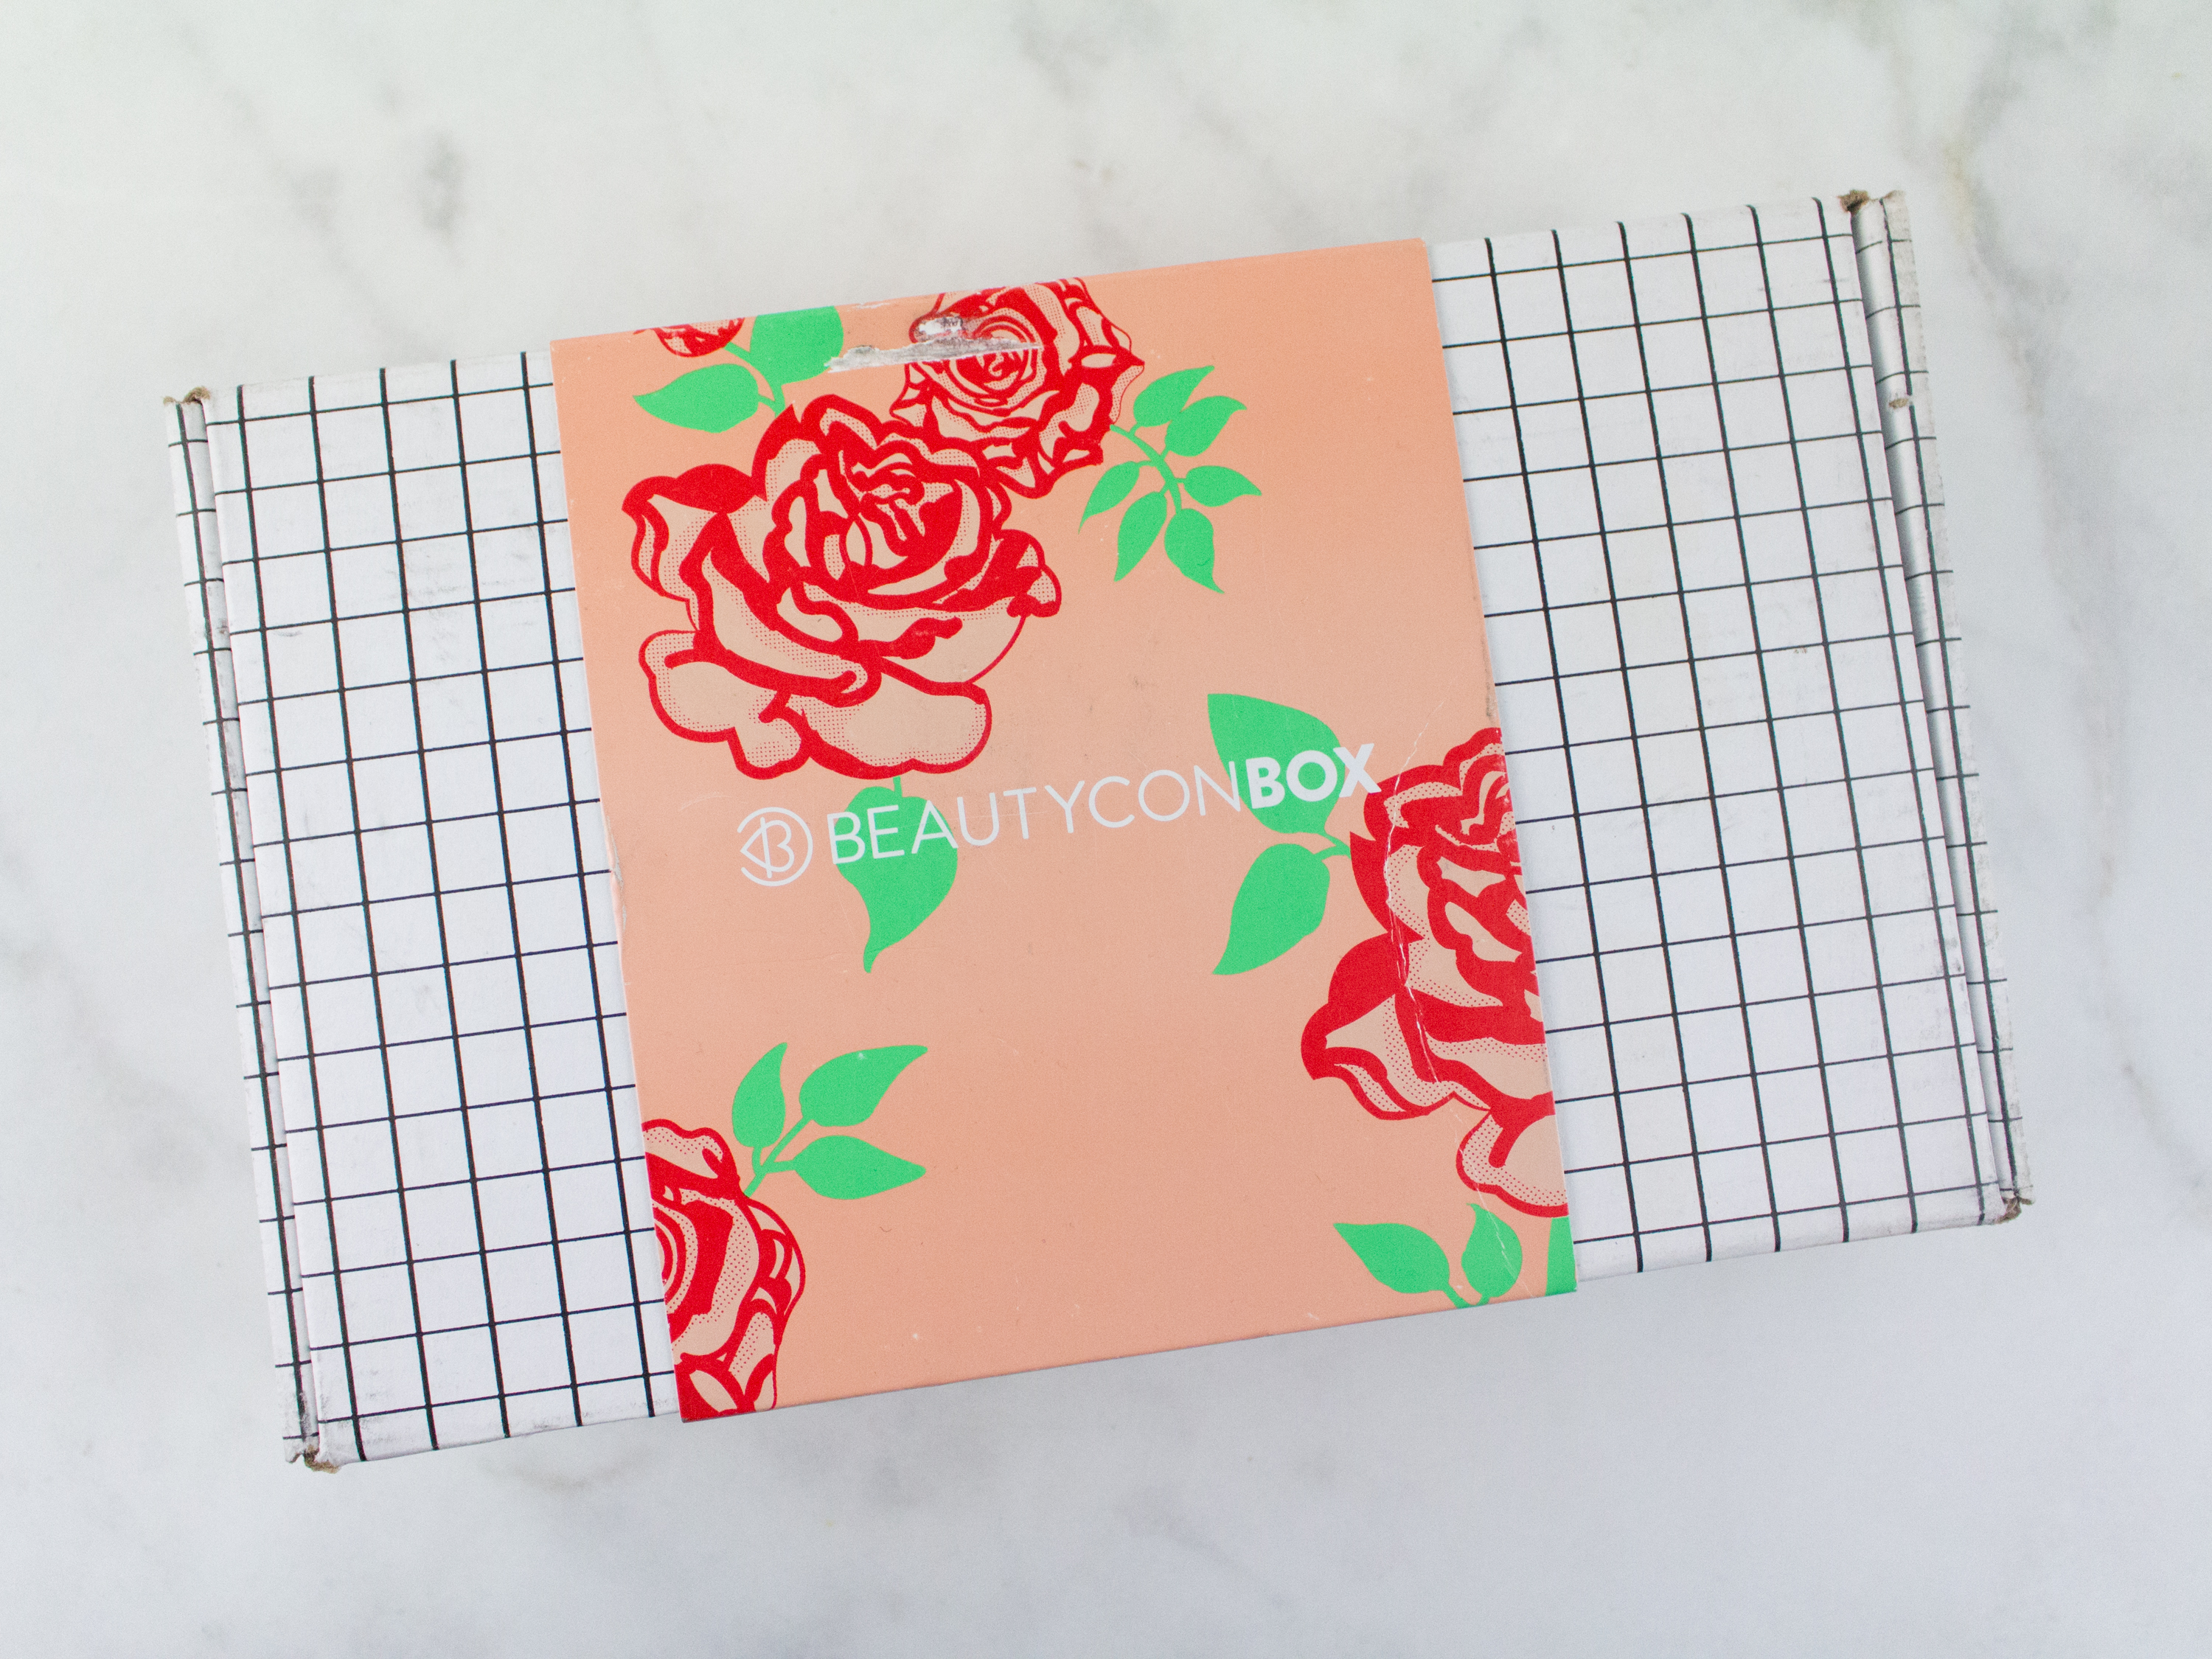 Beautycon Box Spring 2017 Box Giveaway!